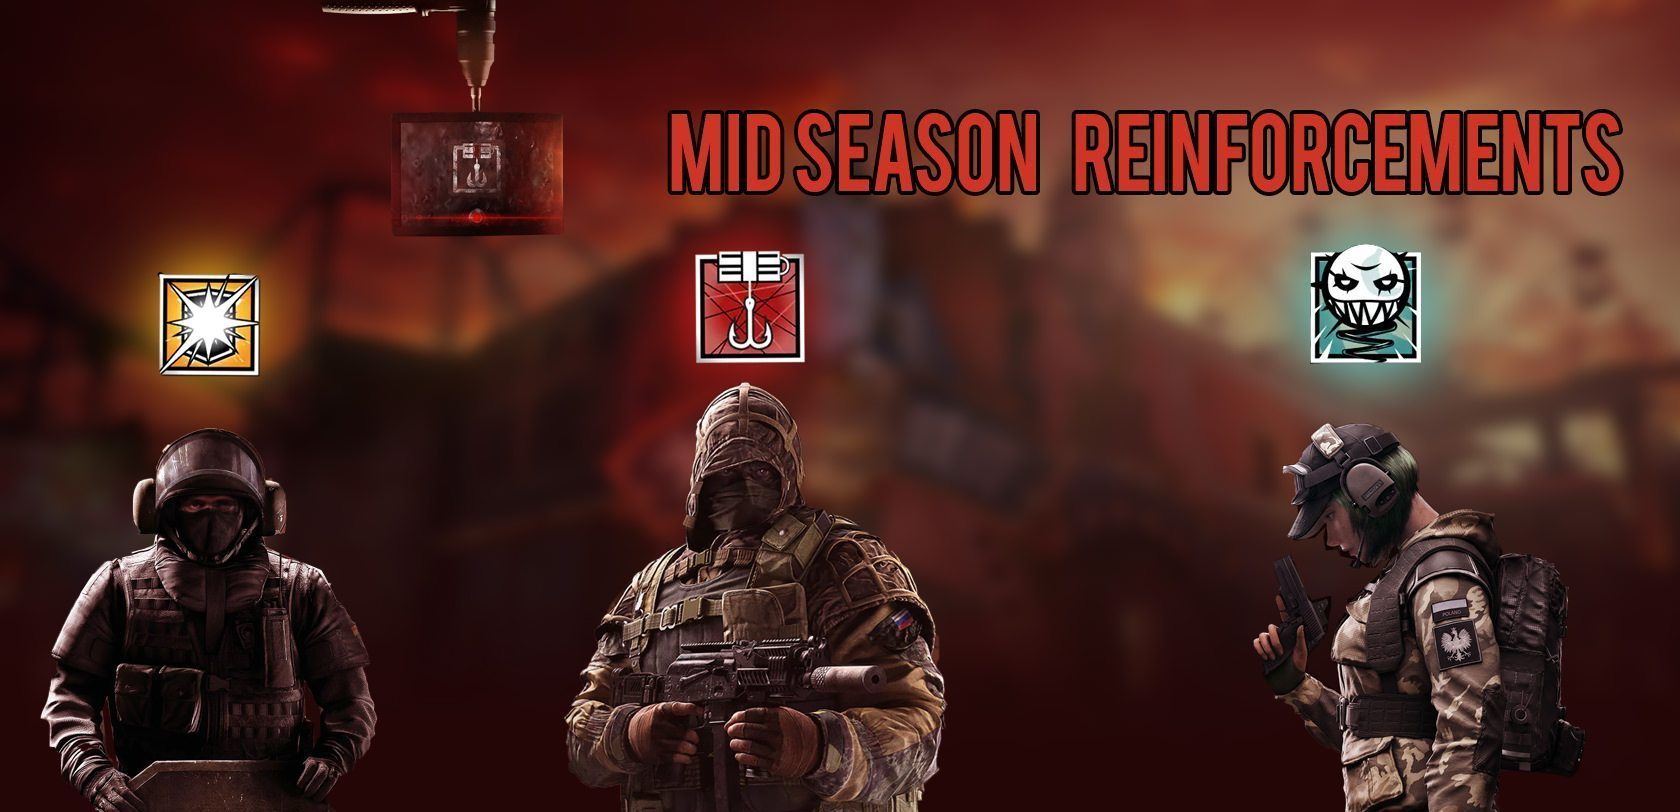 Blood Orchid – mid-season reinforcements are here!